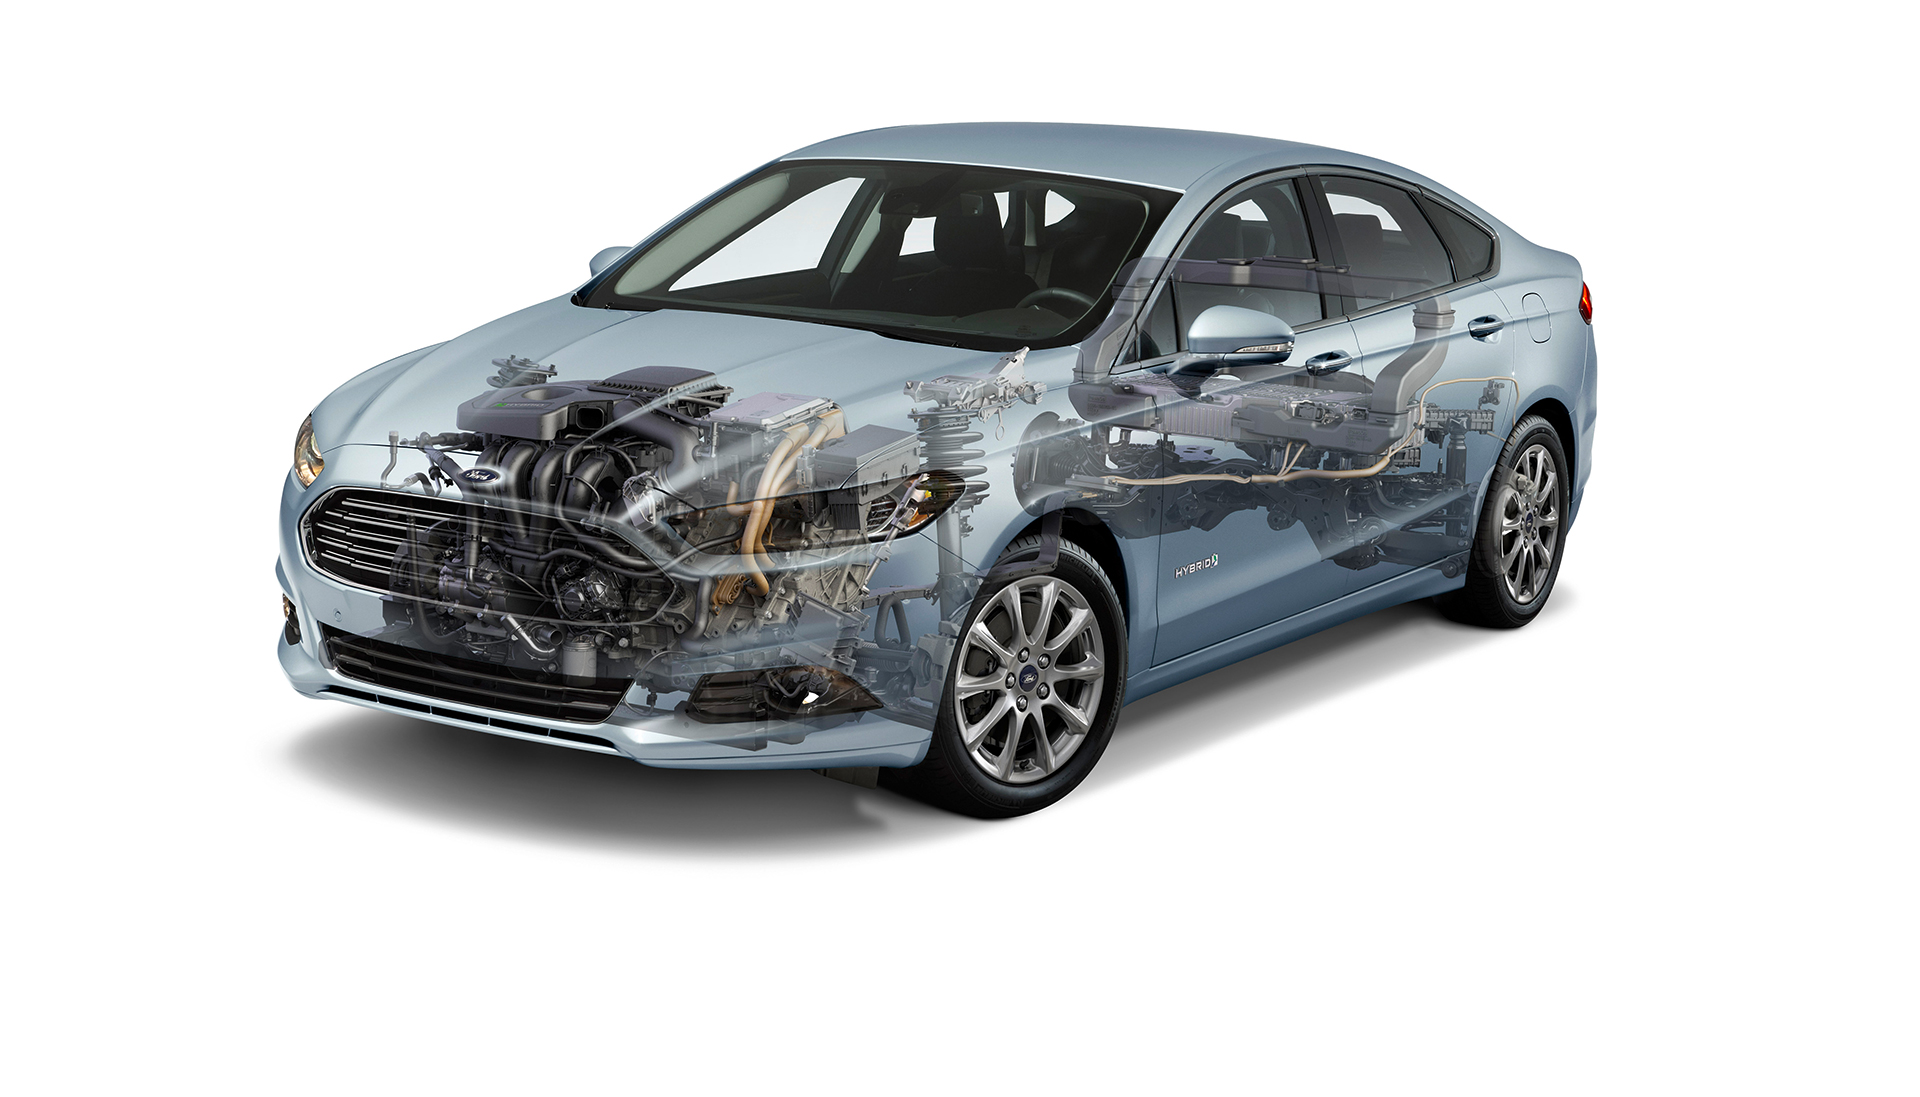 Ford Mondeo Hybrid 2015 - powertain